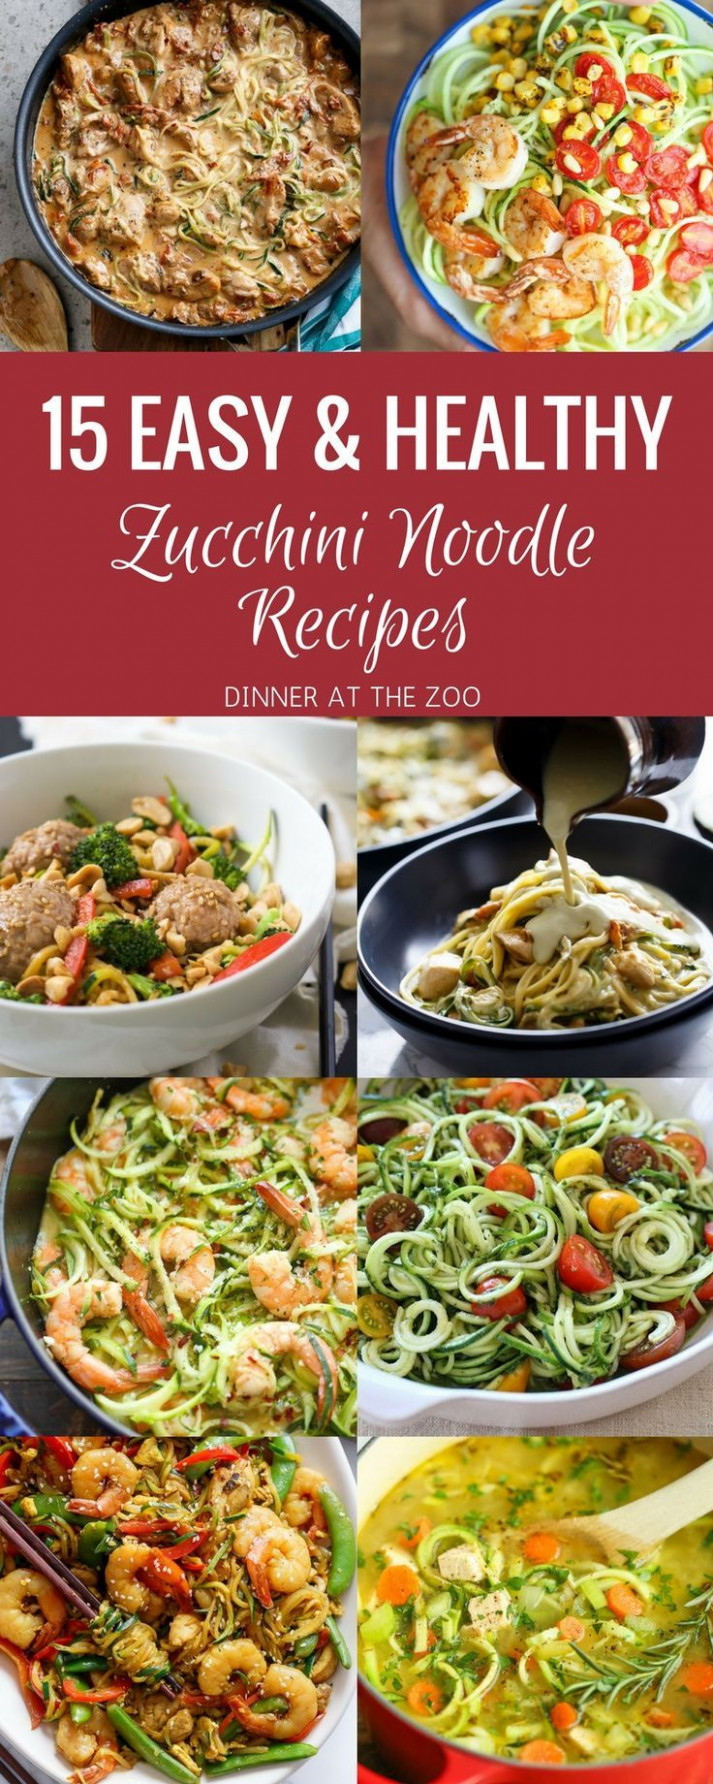 15 Easy & Healthy Zoodle (Zucchini Noodle) Recipes ..